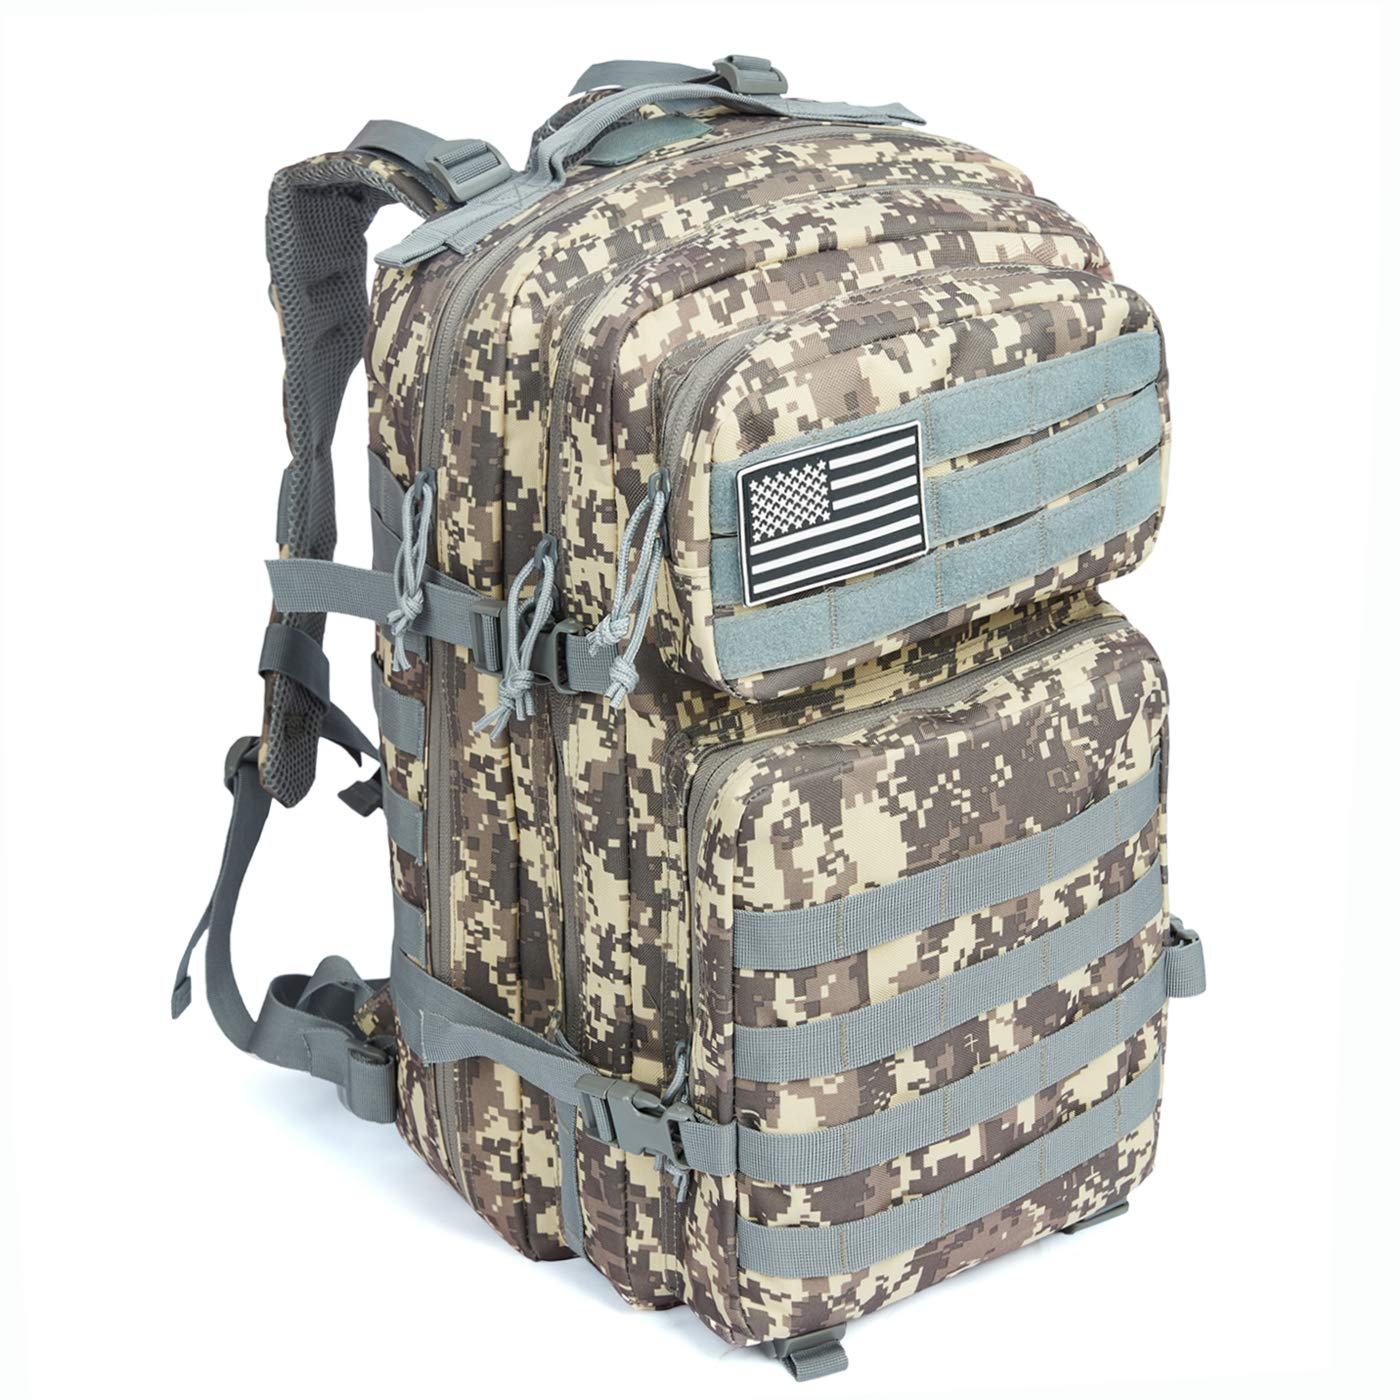 MEWAY 42L Military Tactical Backpack Large Assault Pack 3 Day Army Rucksacks Molle Bag Outdoors Hiking Daypack Hunting Backpacks (New-ACU)